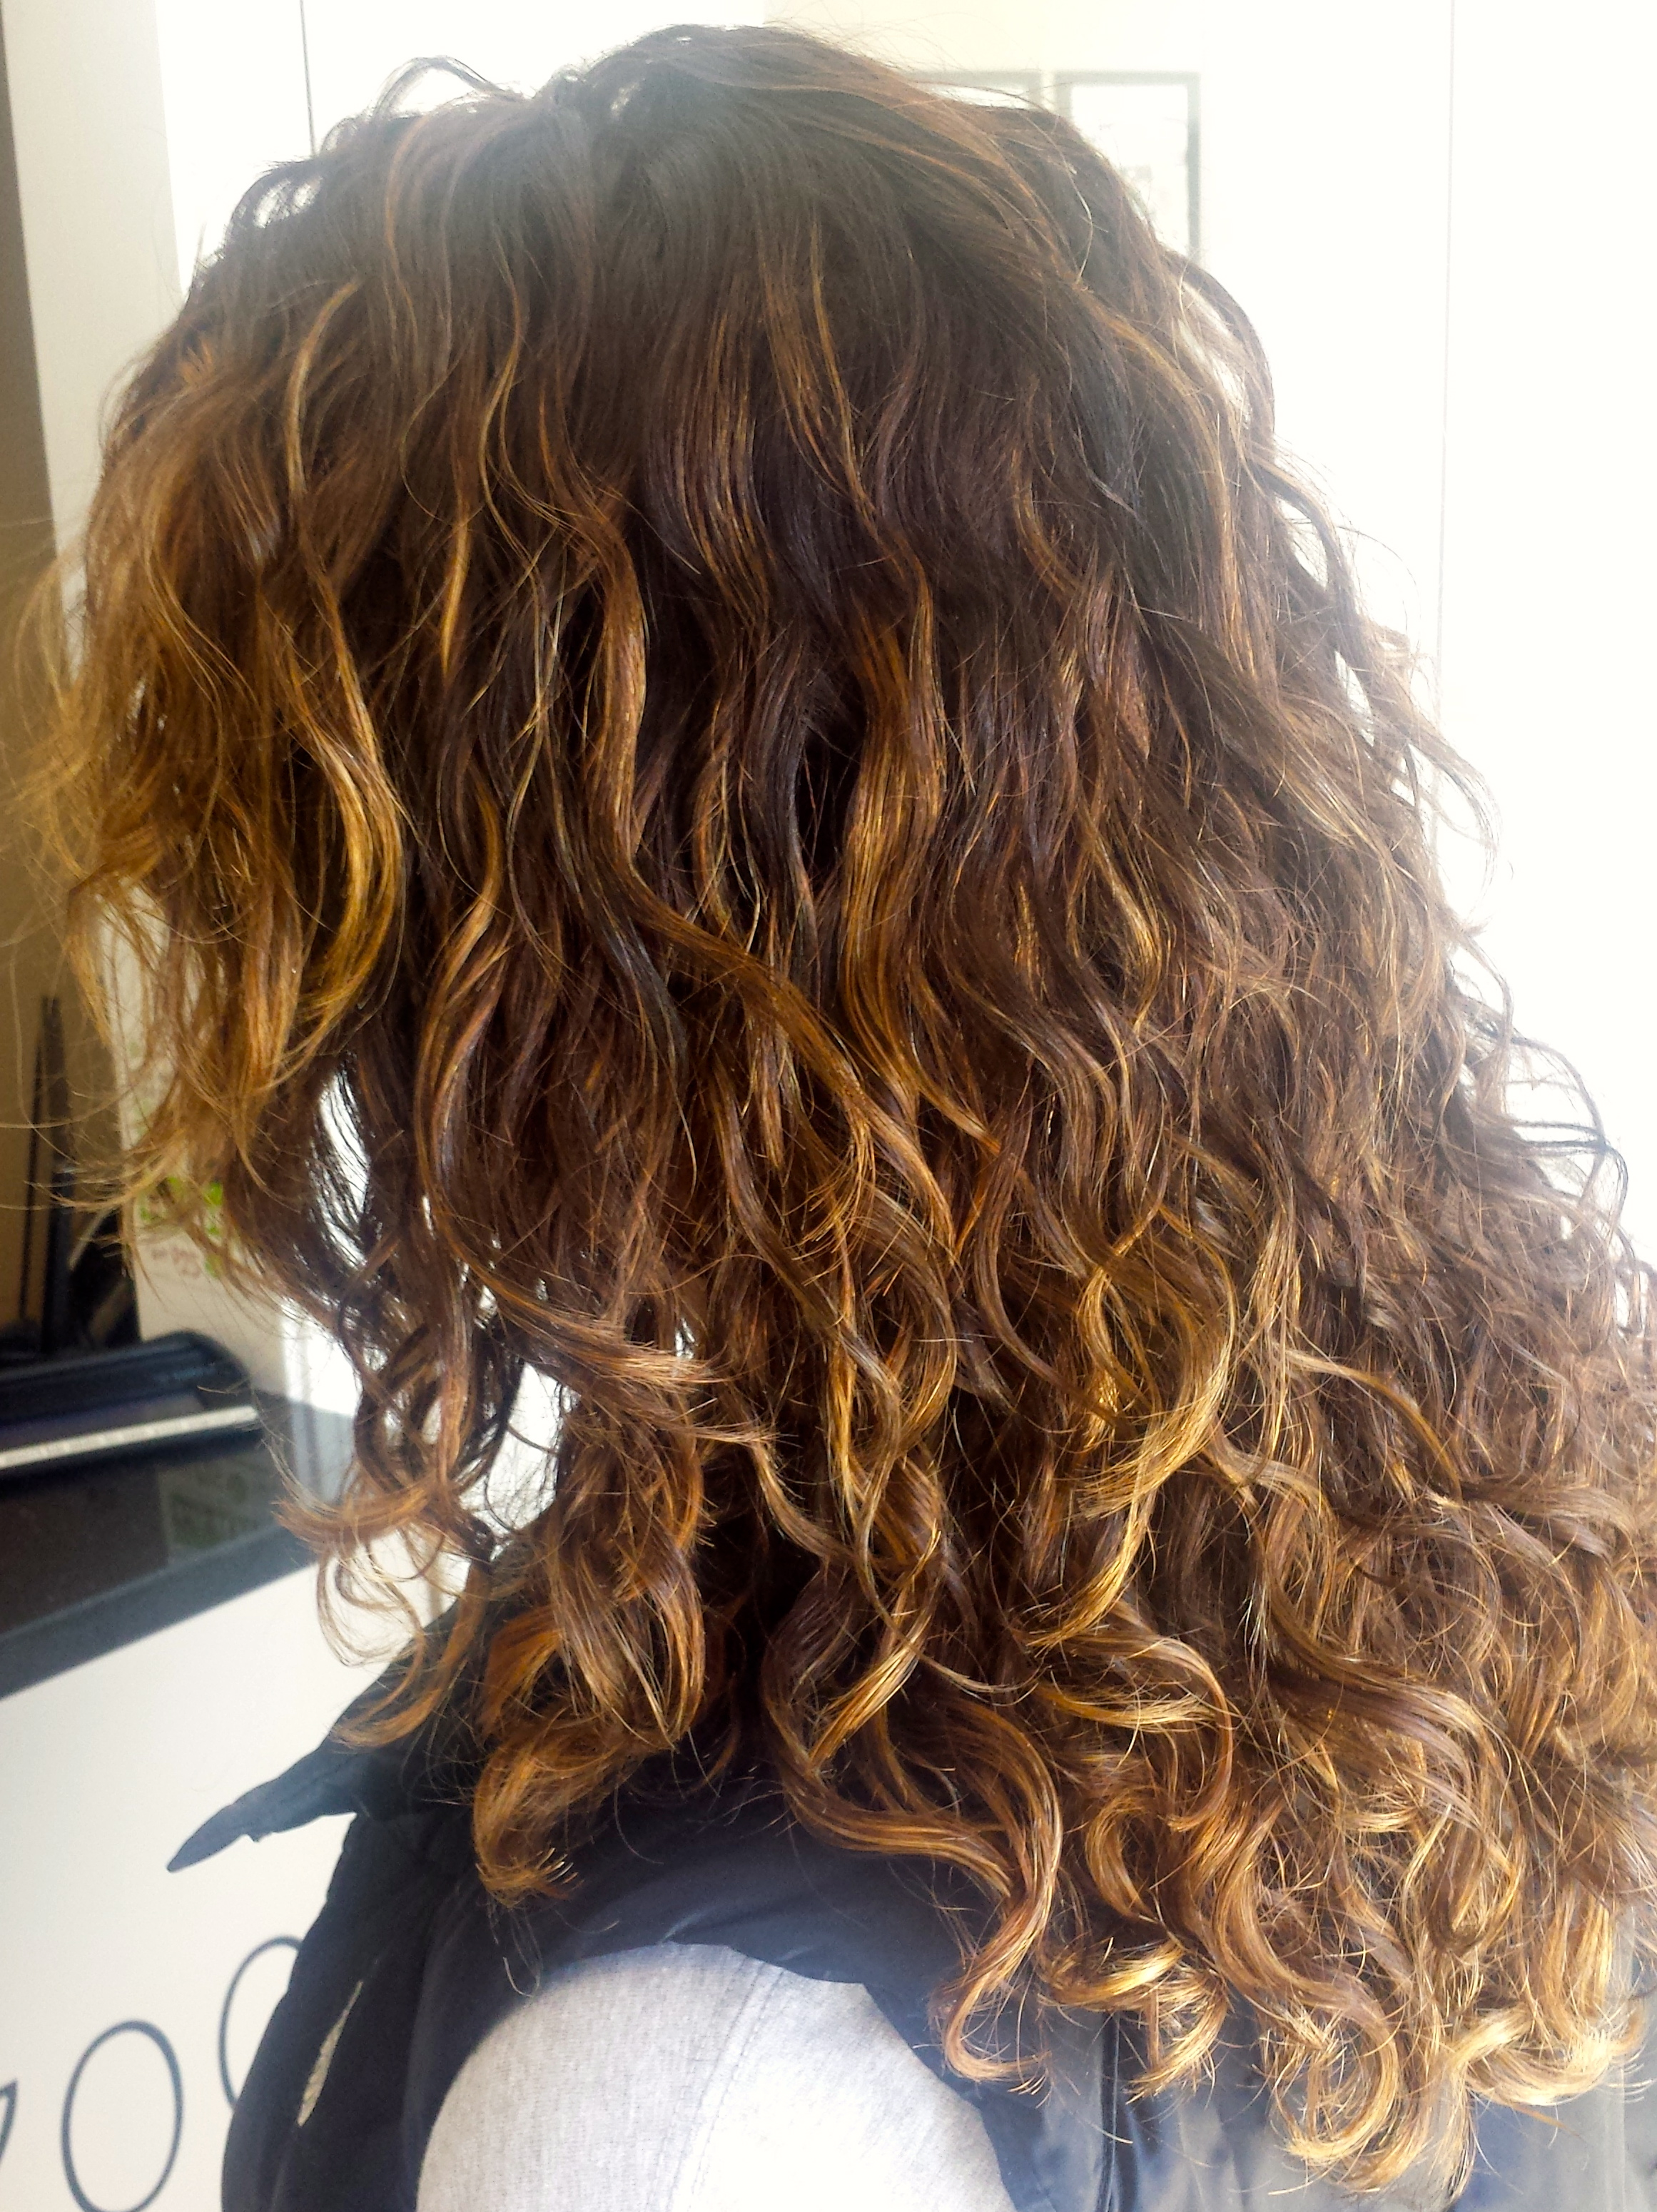 Curls by Kate